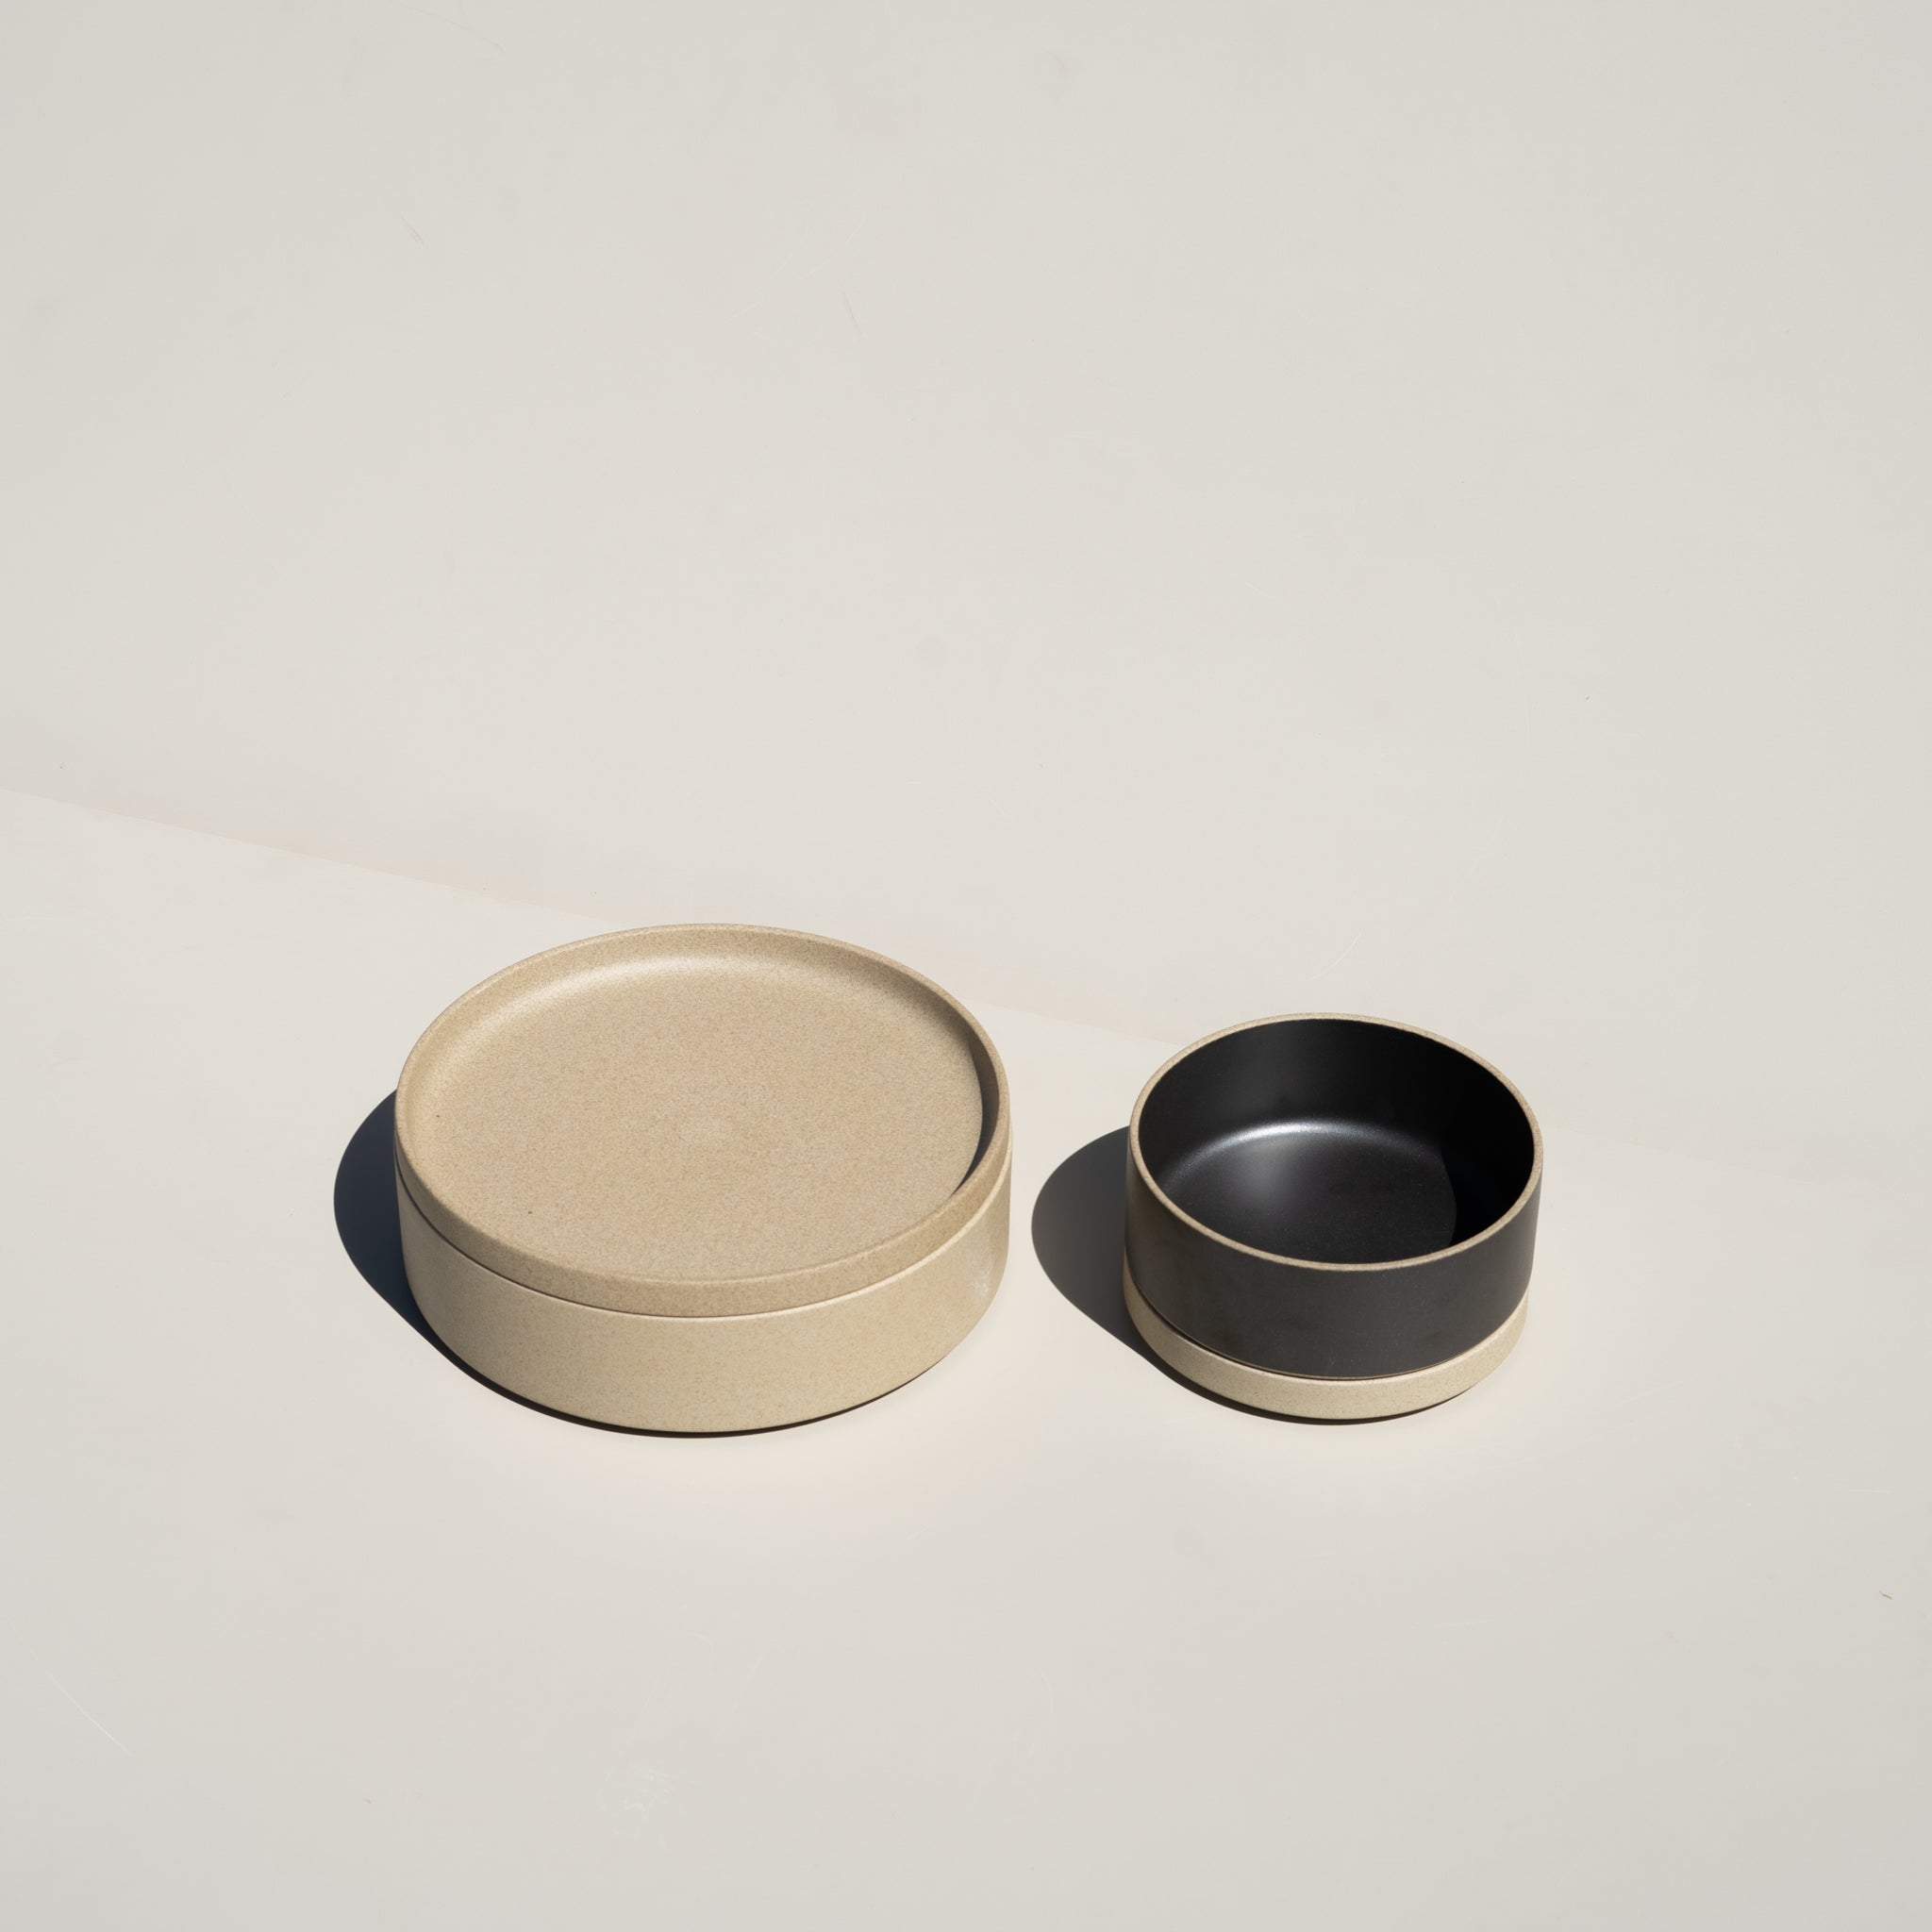 "The Hasami Porcelain 5.5/8"" plate in natural has a stackable design."